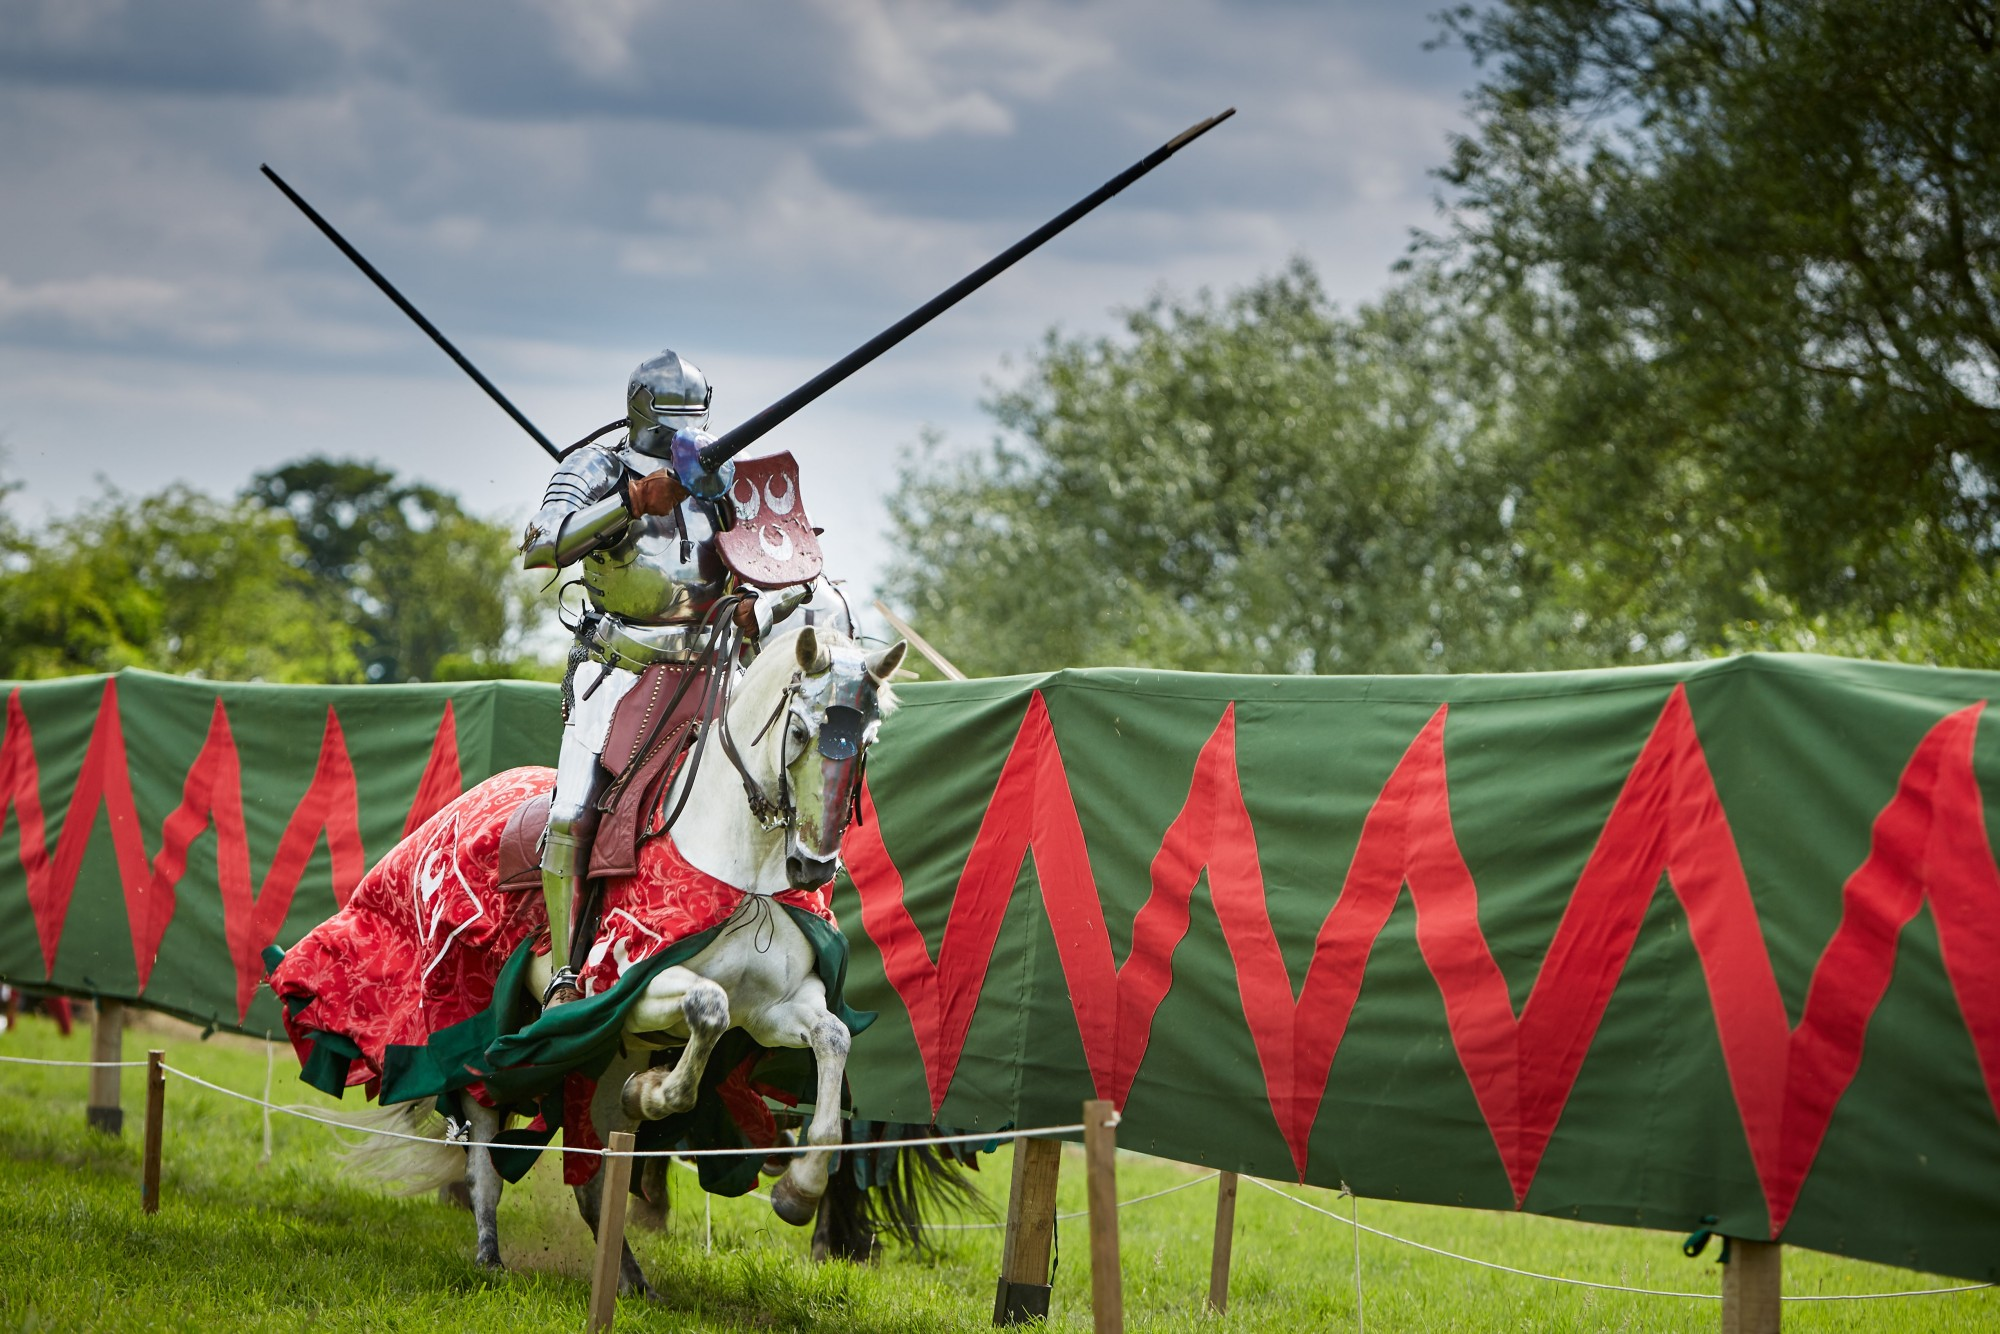 A man jousting on horseback at an english heritage site